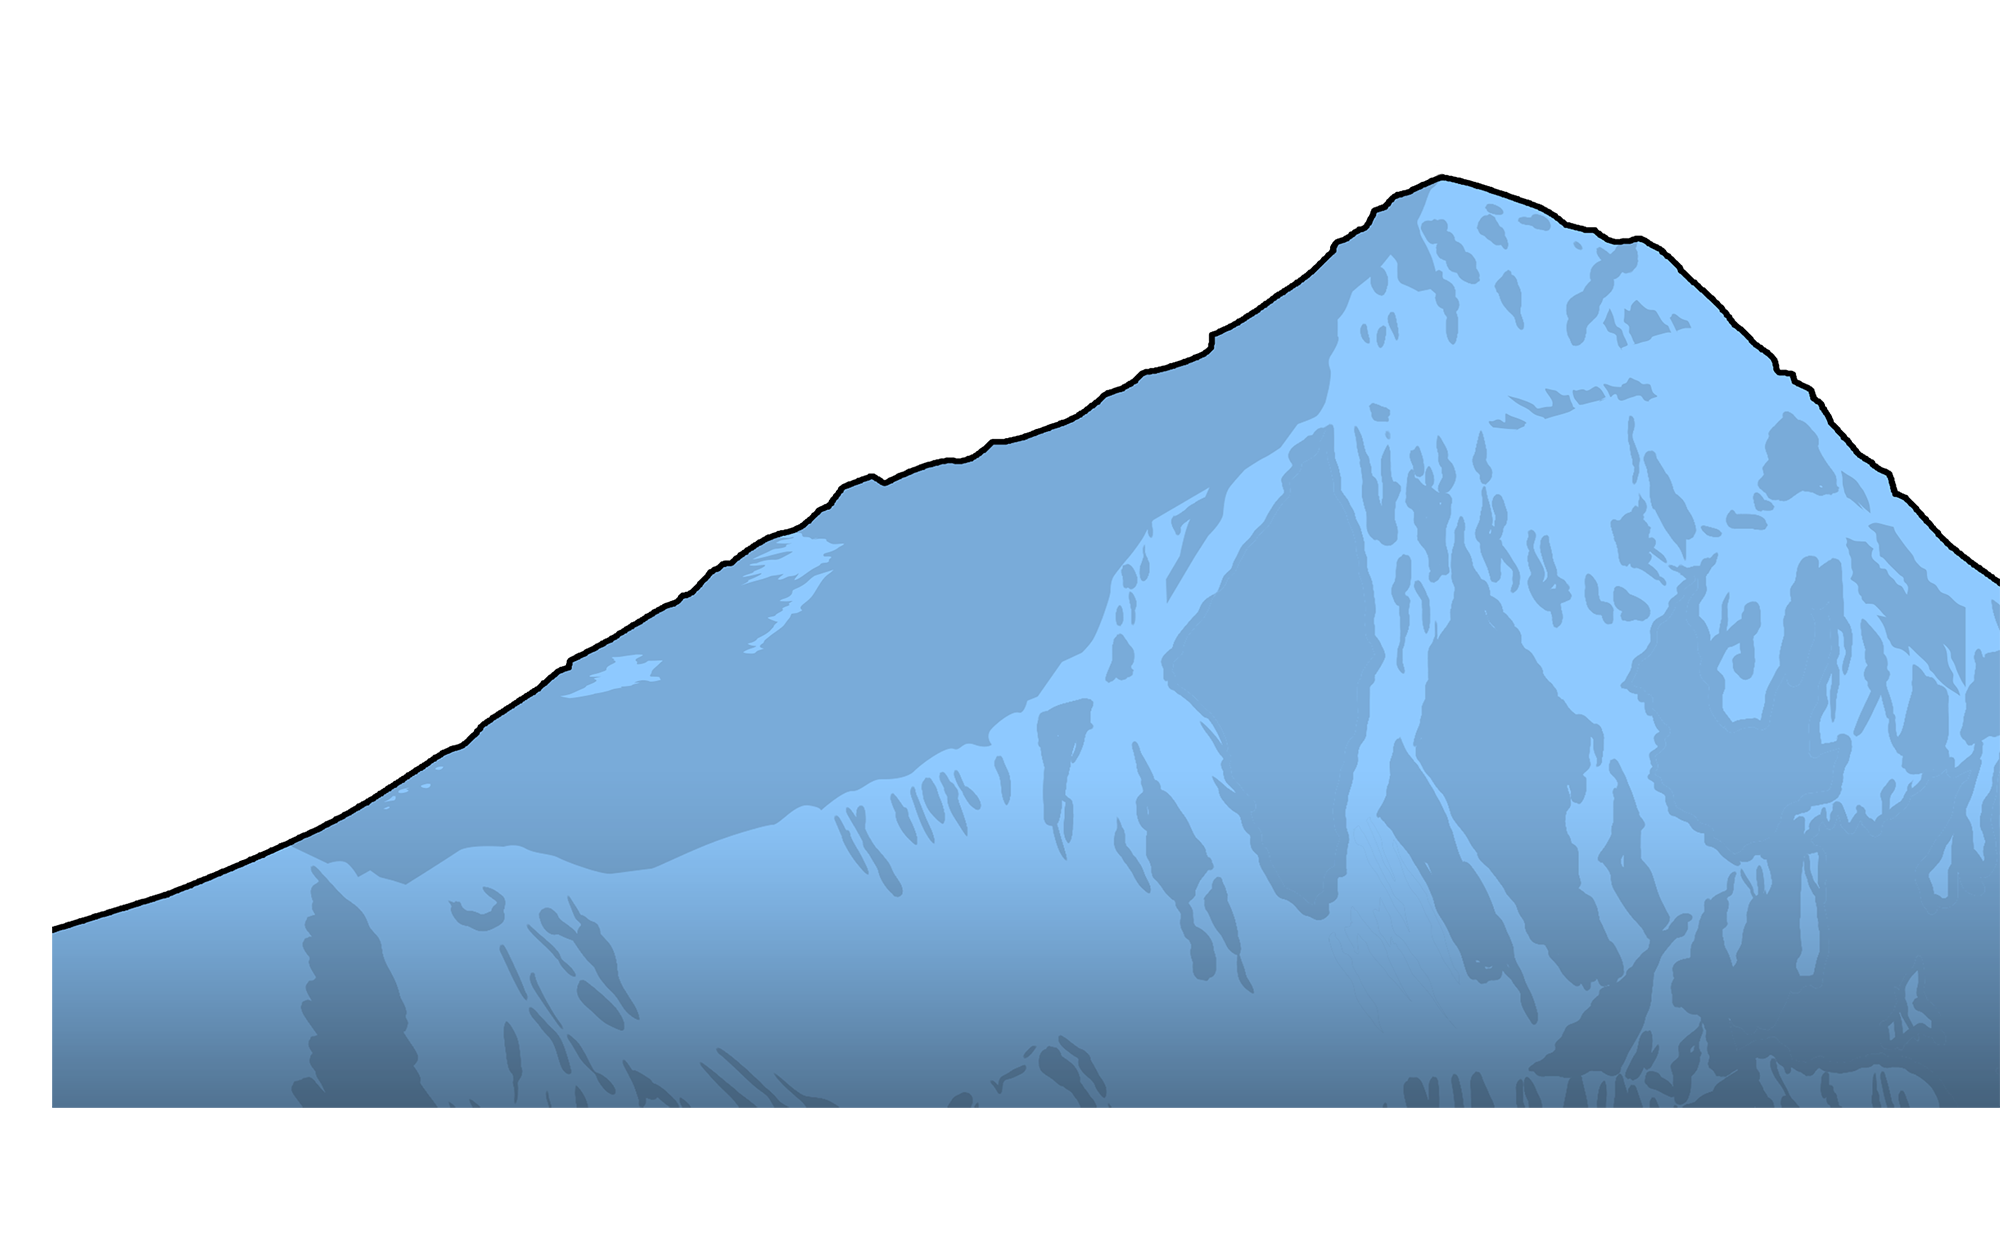 Avalanche drawing mount everest. The deadly mountains why